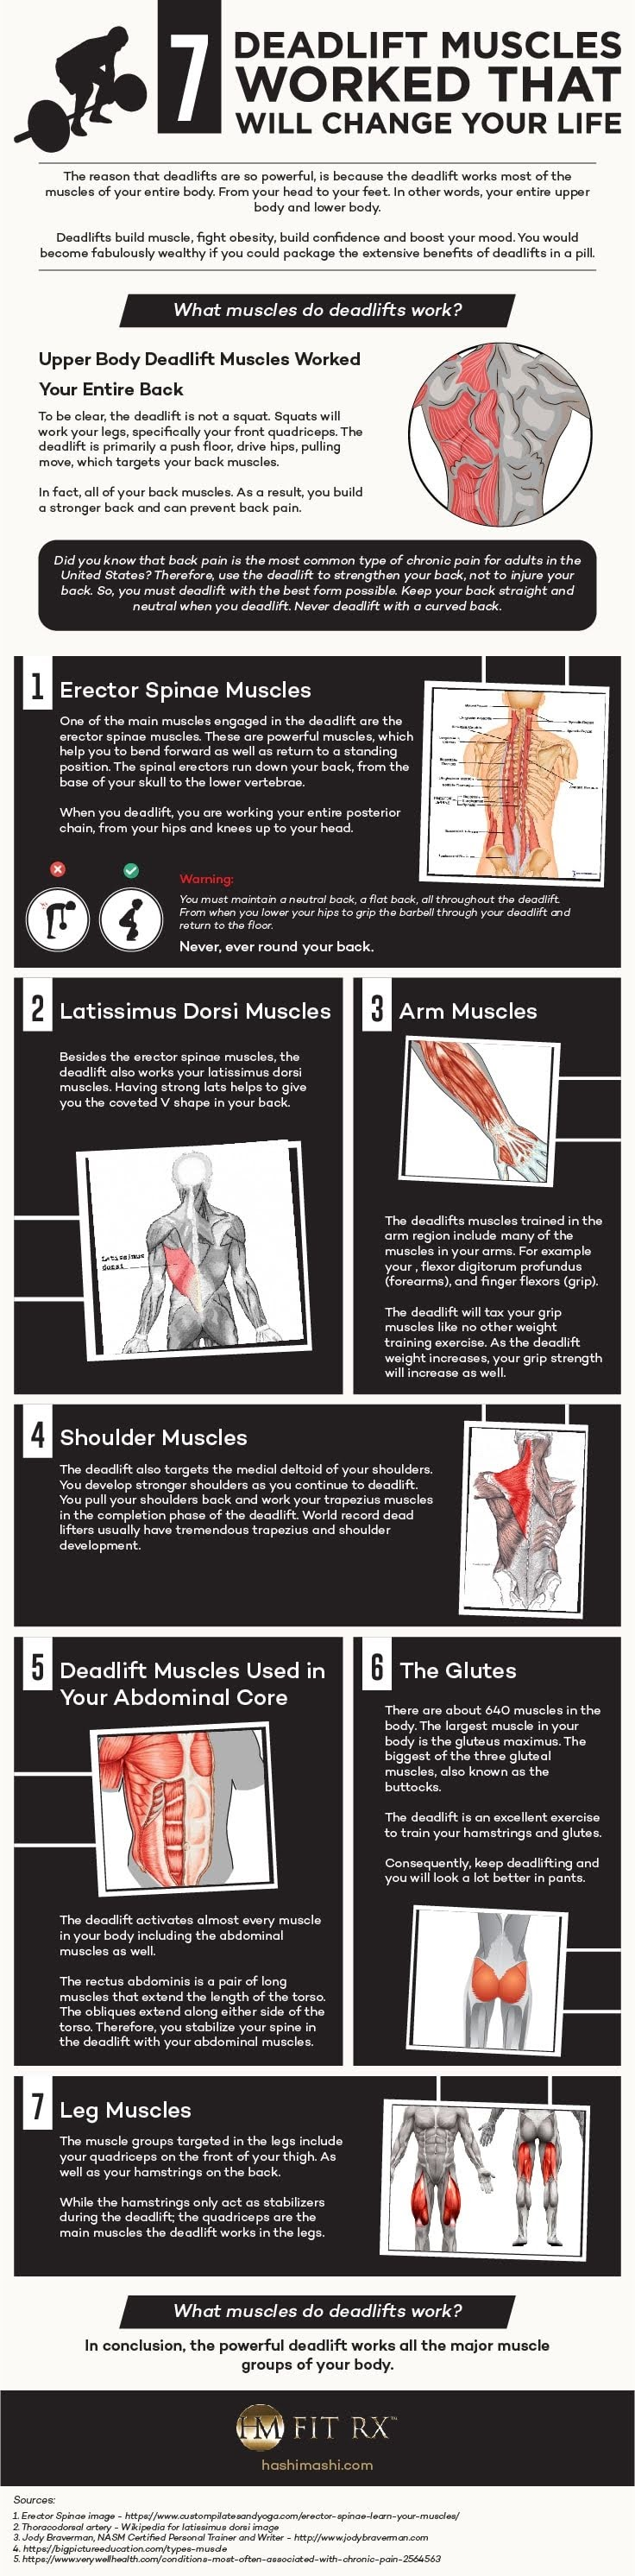 7 Deadlift Muscles Worked That Will Change Your Life #infographic